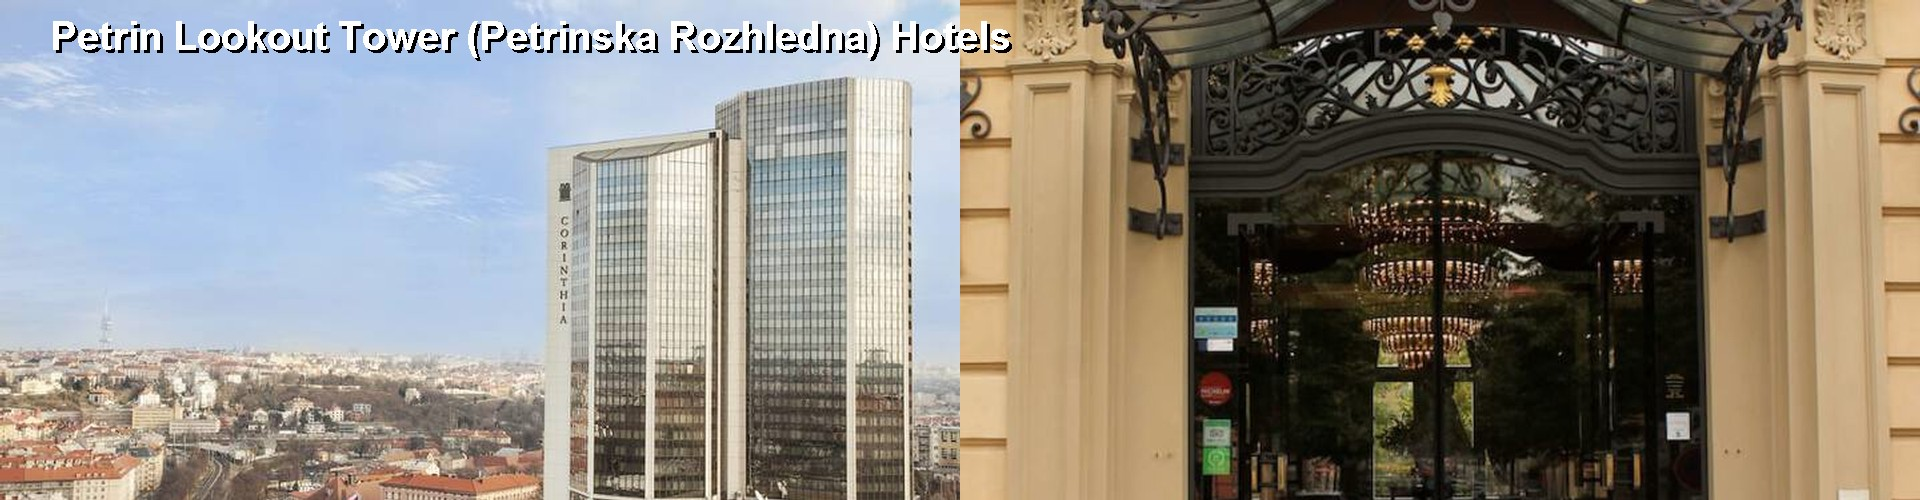 5 Best Hotels near Petrin Lookout Tower (Petrinska Rozhledna)